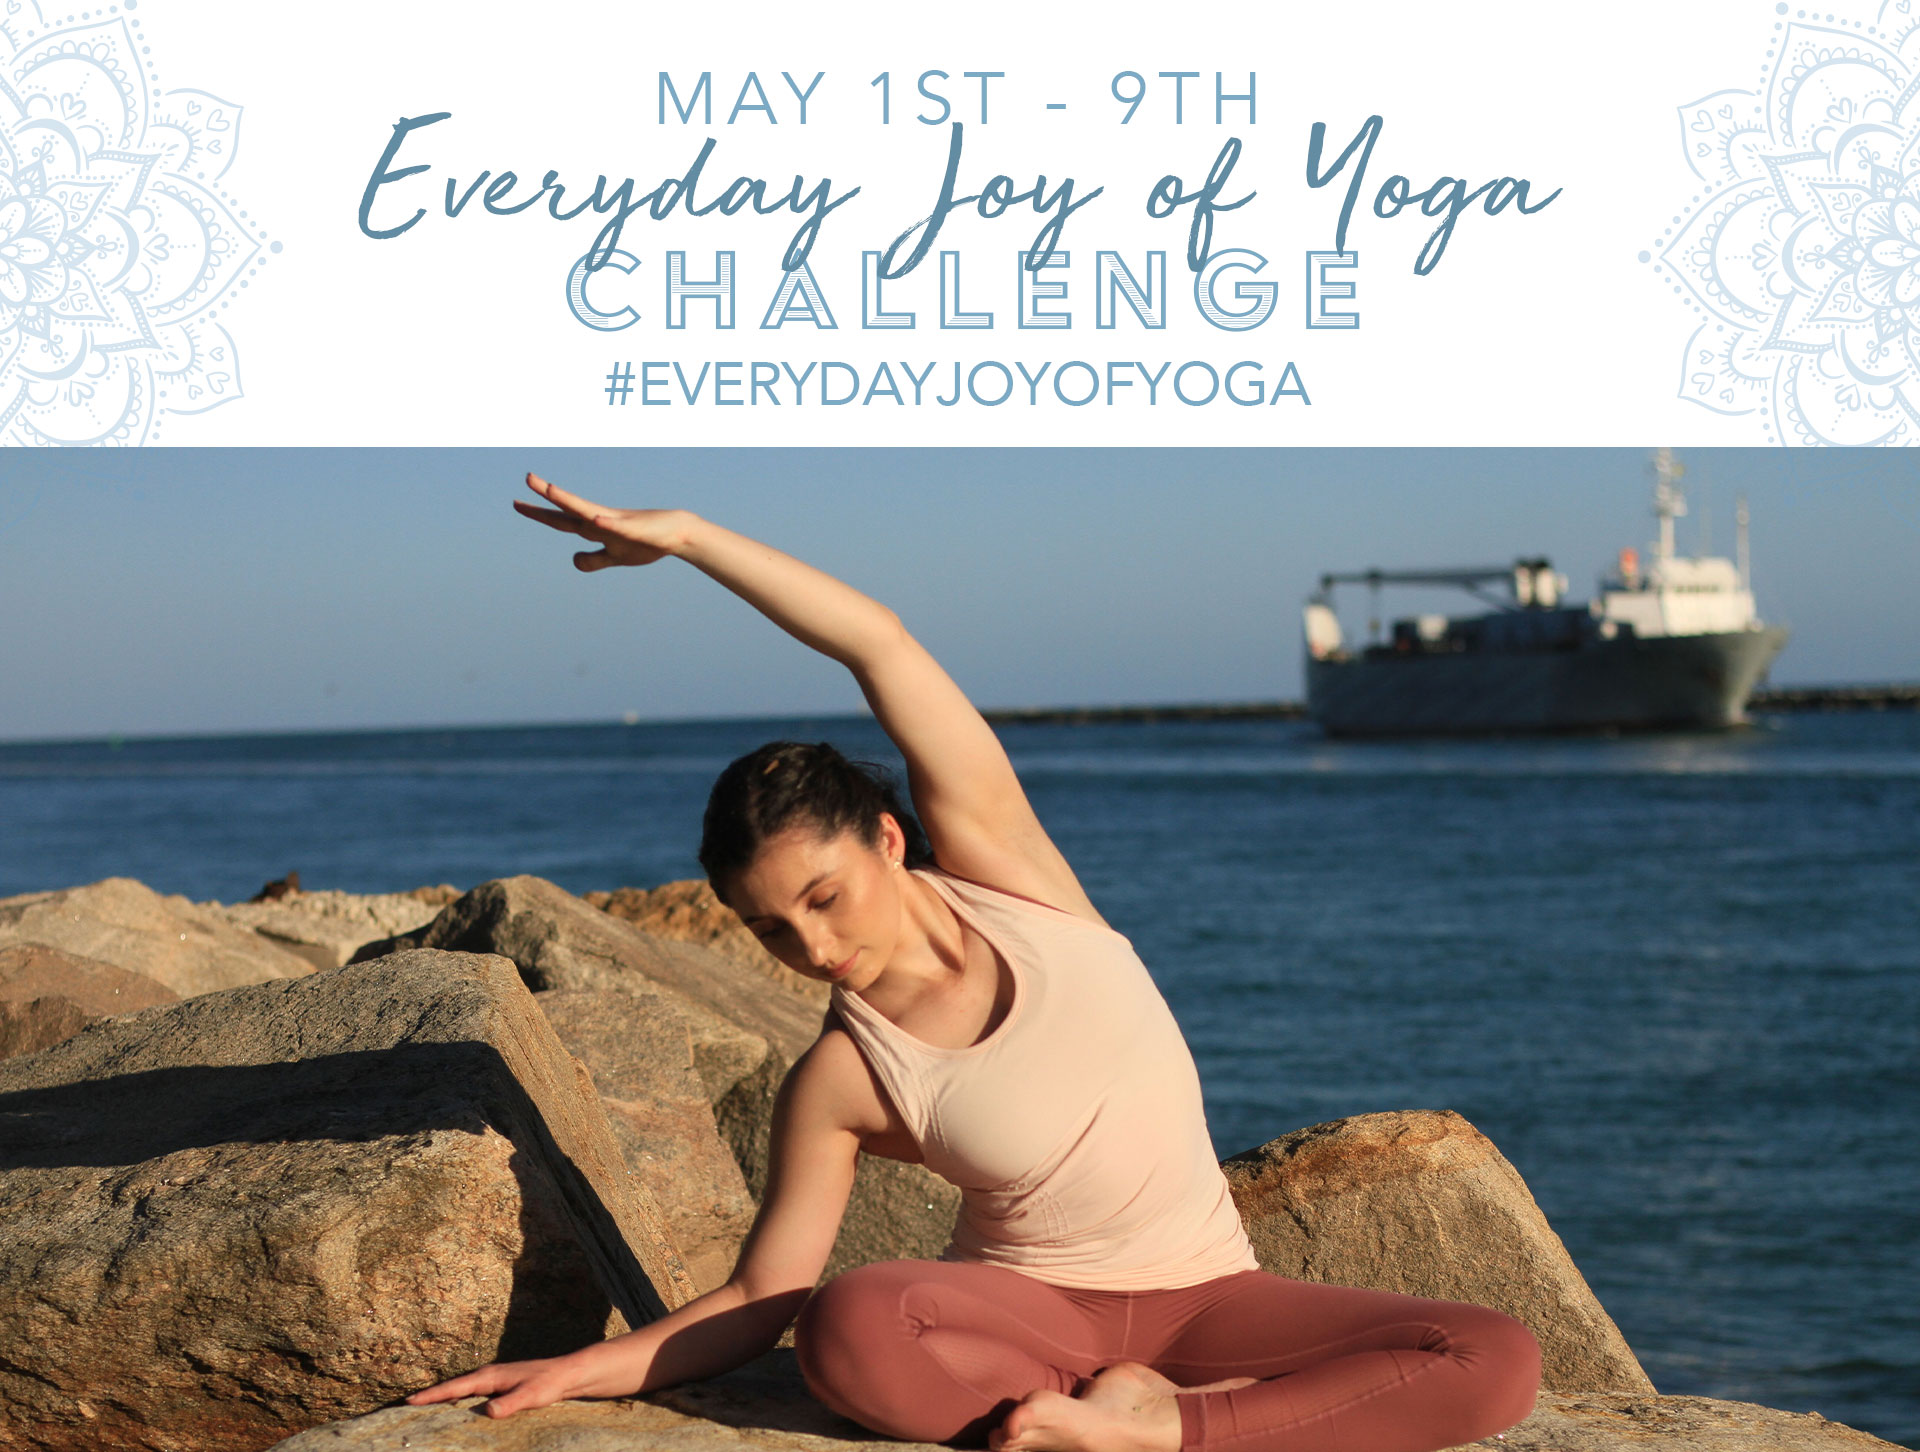 Everyday Joy of Yoga Challenge